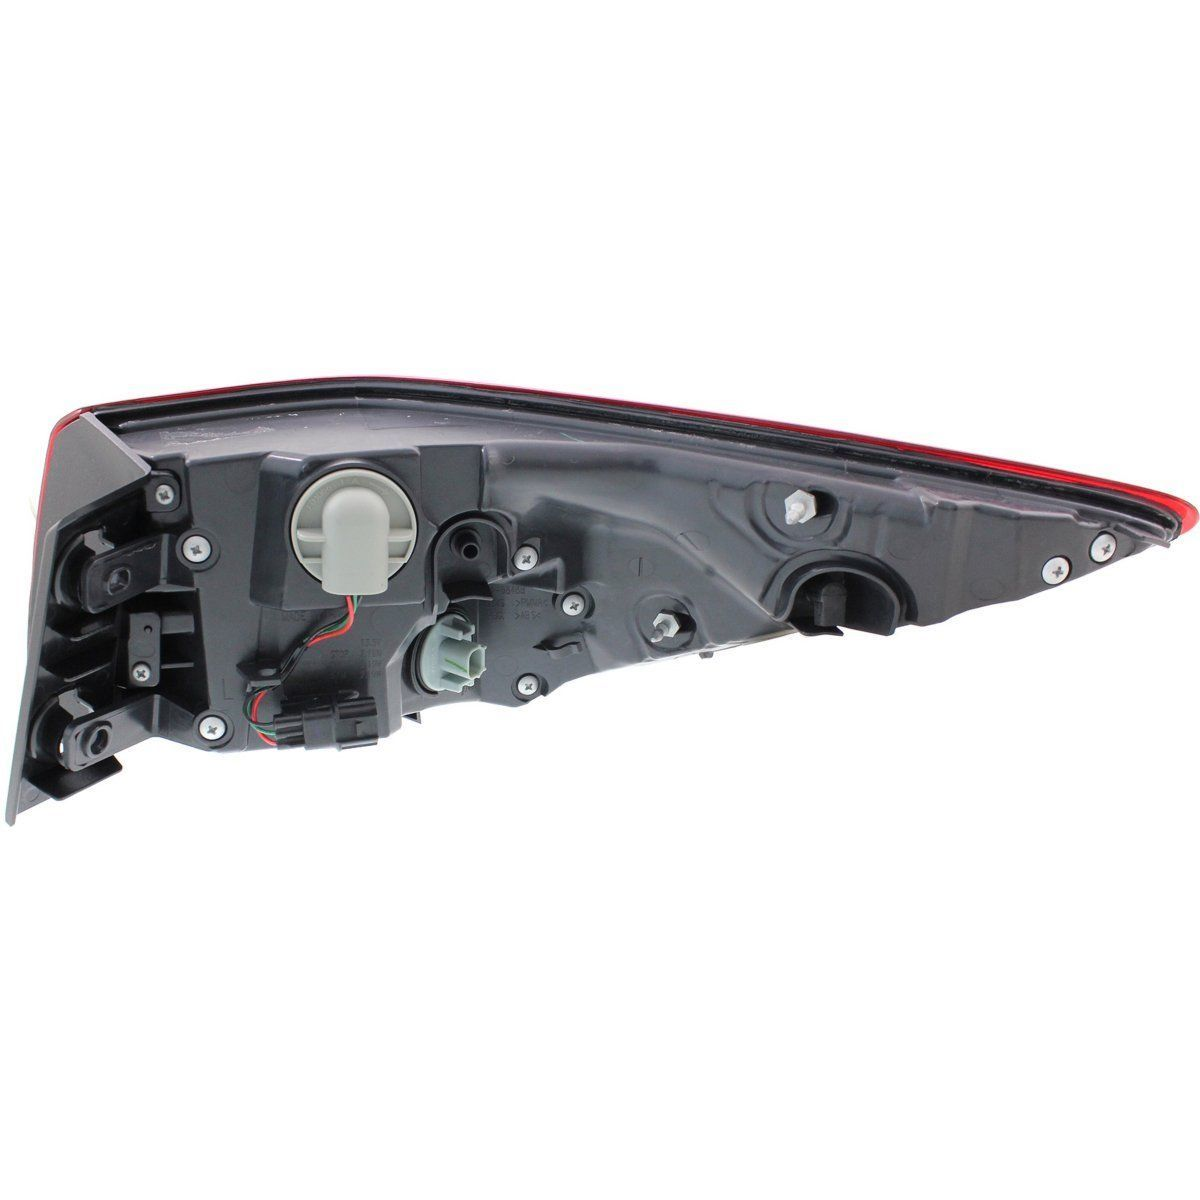 2015-2017 Acura Tlx 2.4L 3.5L Tail Lamp Or Light Assembly